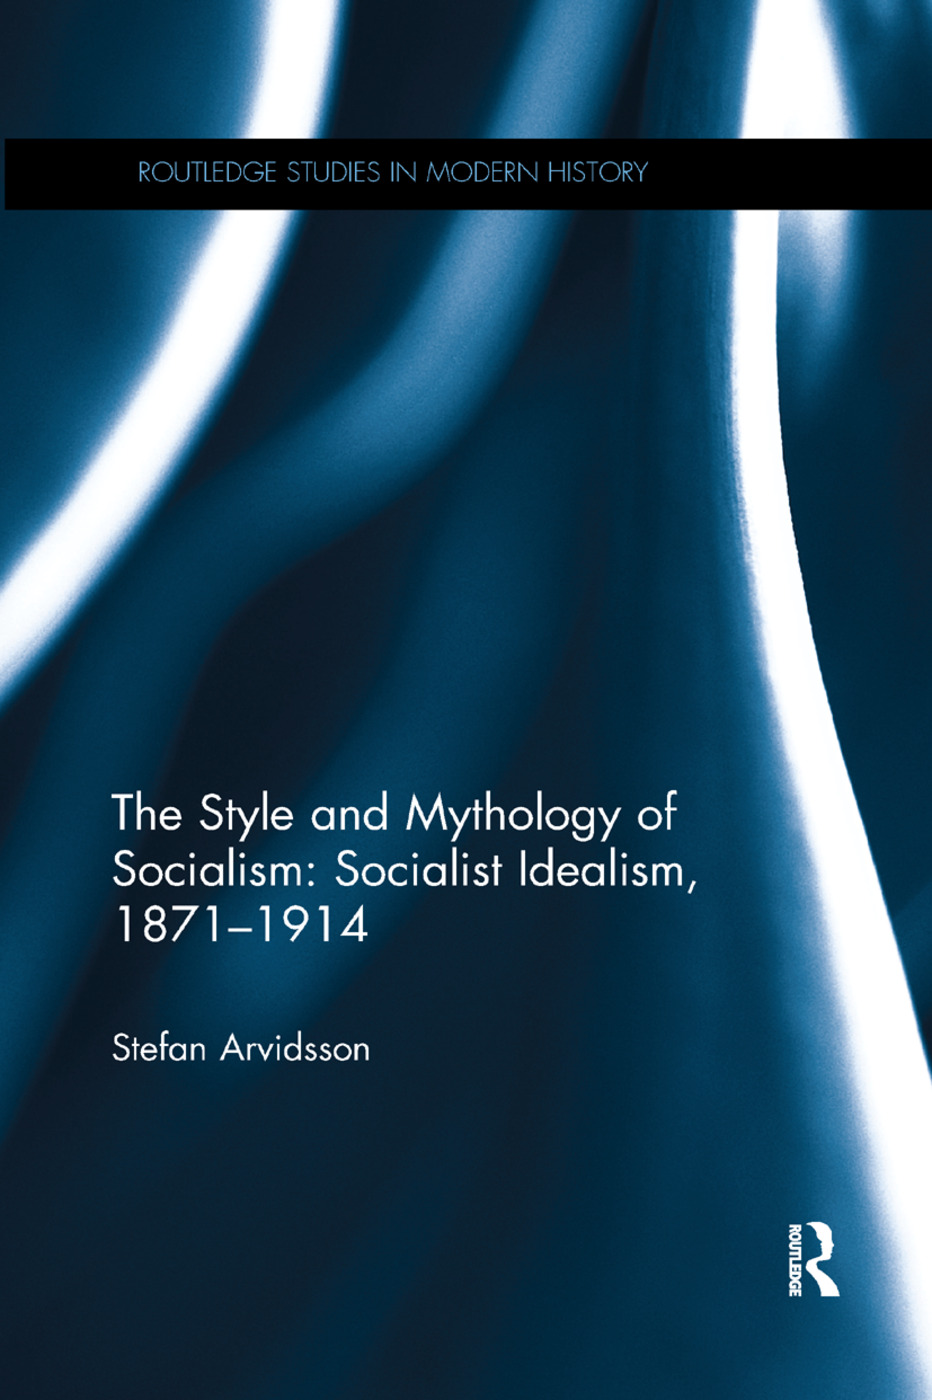 The Style and Mythology of Socialism: Socialist Idealism, 1871-1914: 1st Edition (Paperback) book cover